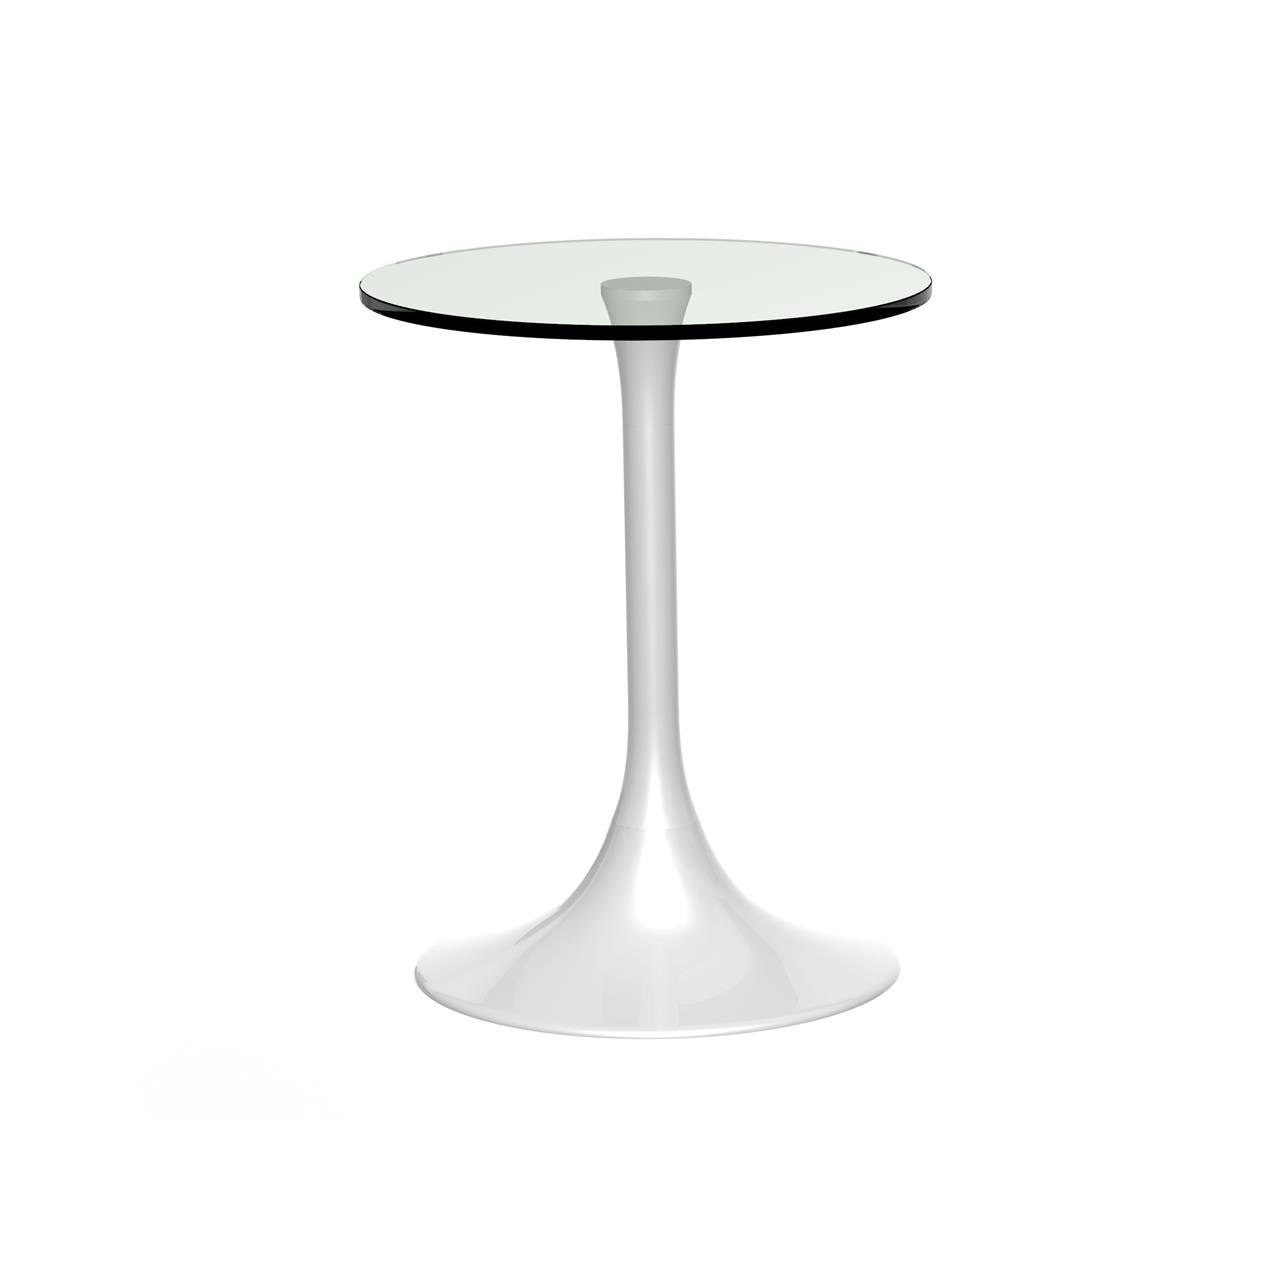 image-Swan round side table - Clear glass / white gloss base